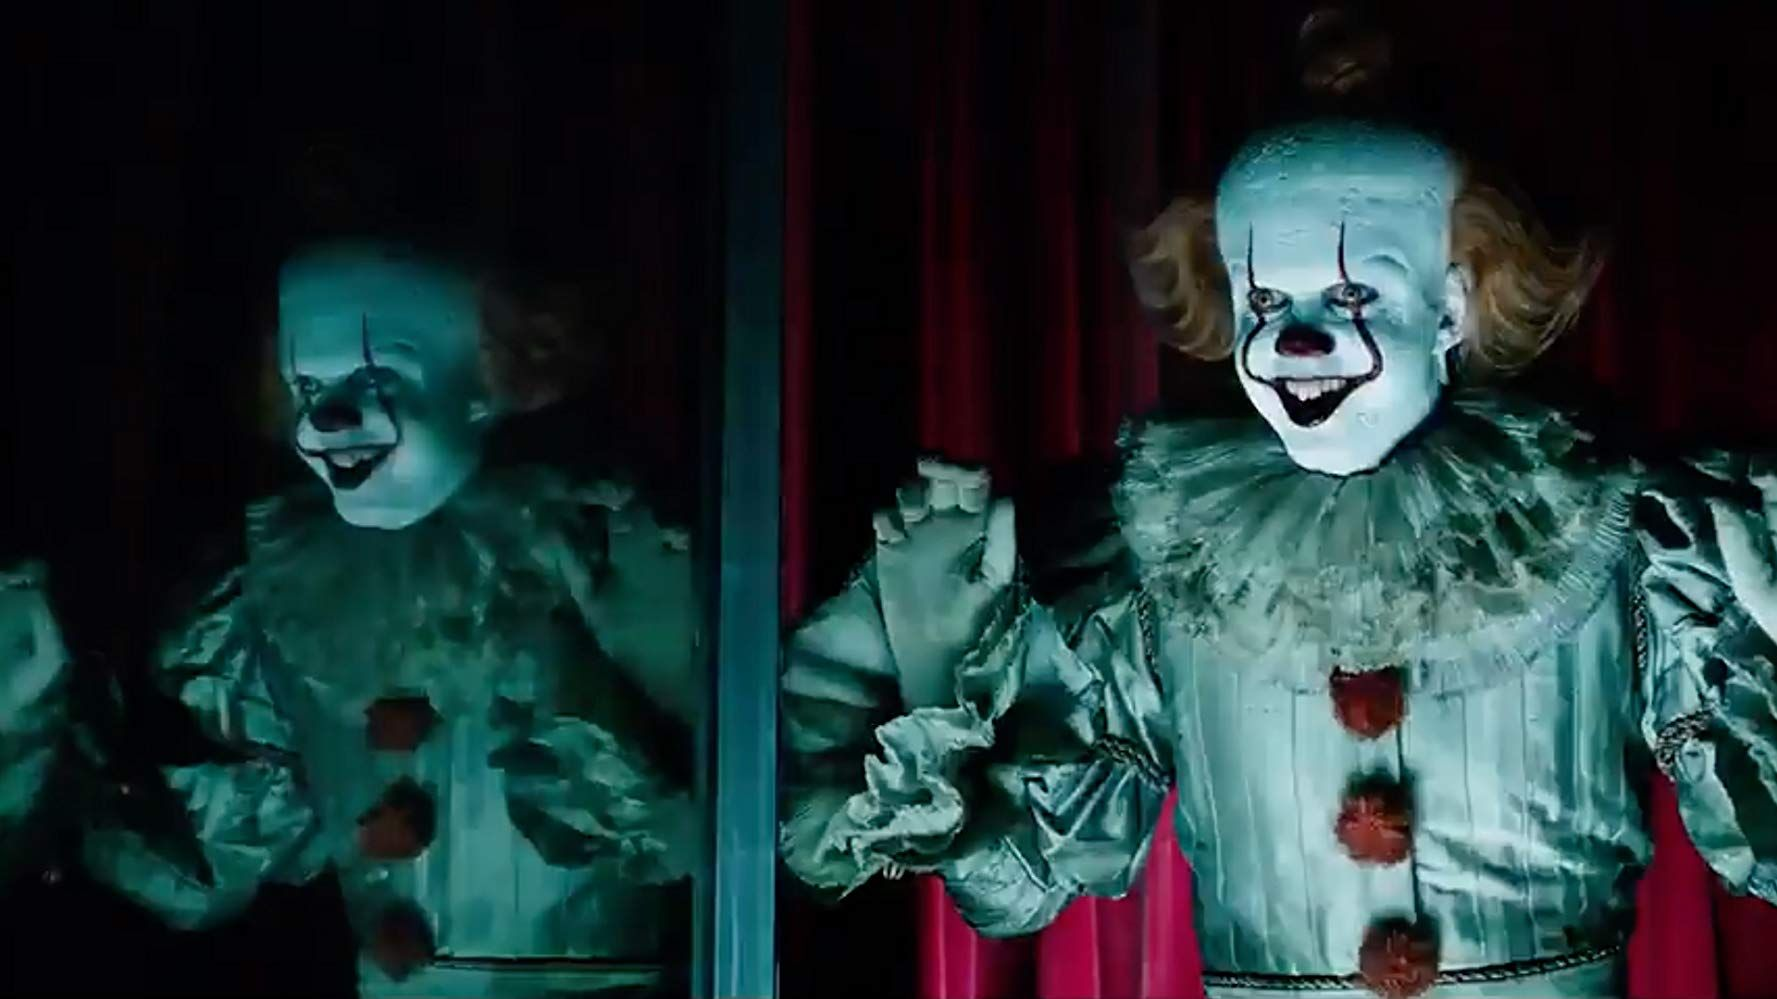 Regarder Ca Chapitre Ii 2019 Filmzenstream Vf Streaming Pennywise Stephen King Pennywise The Clown